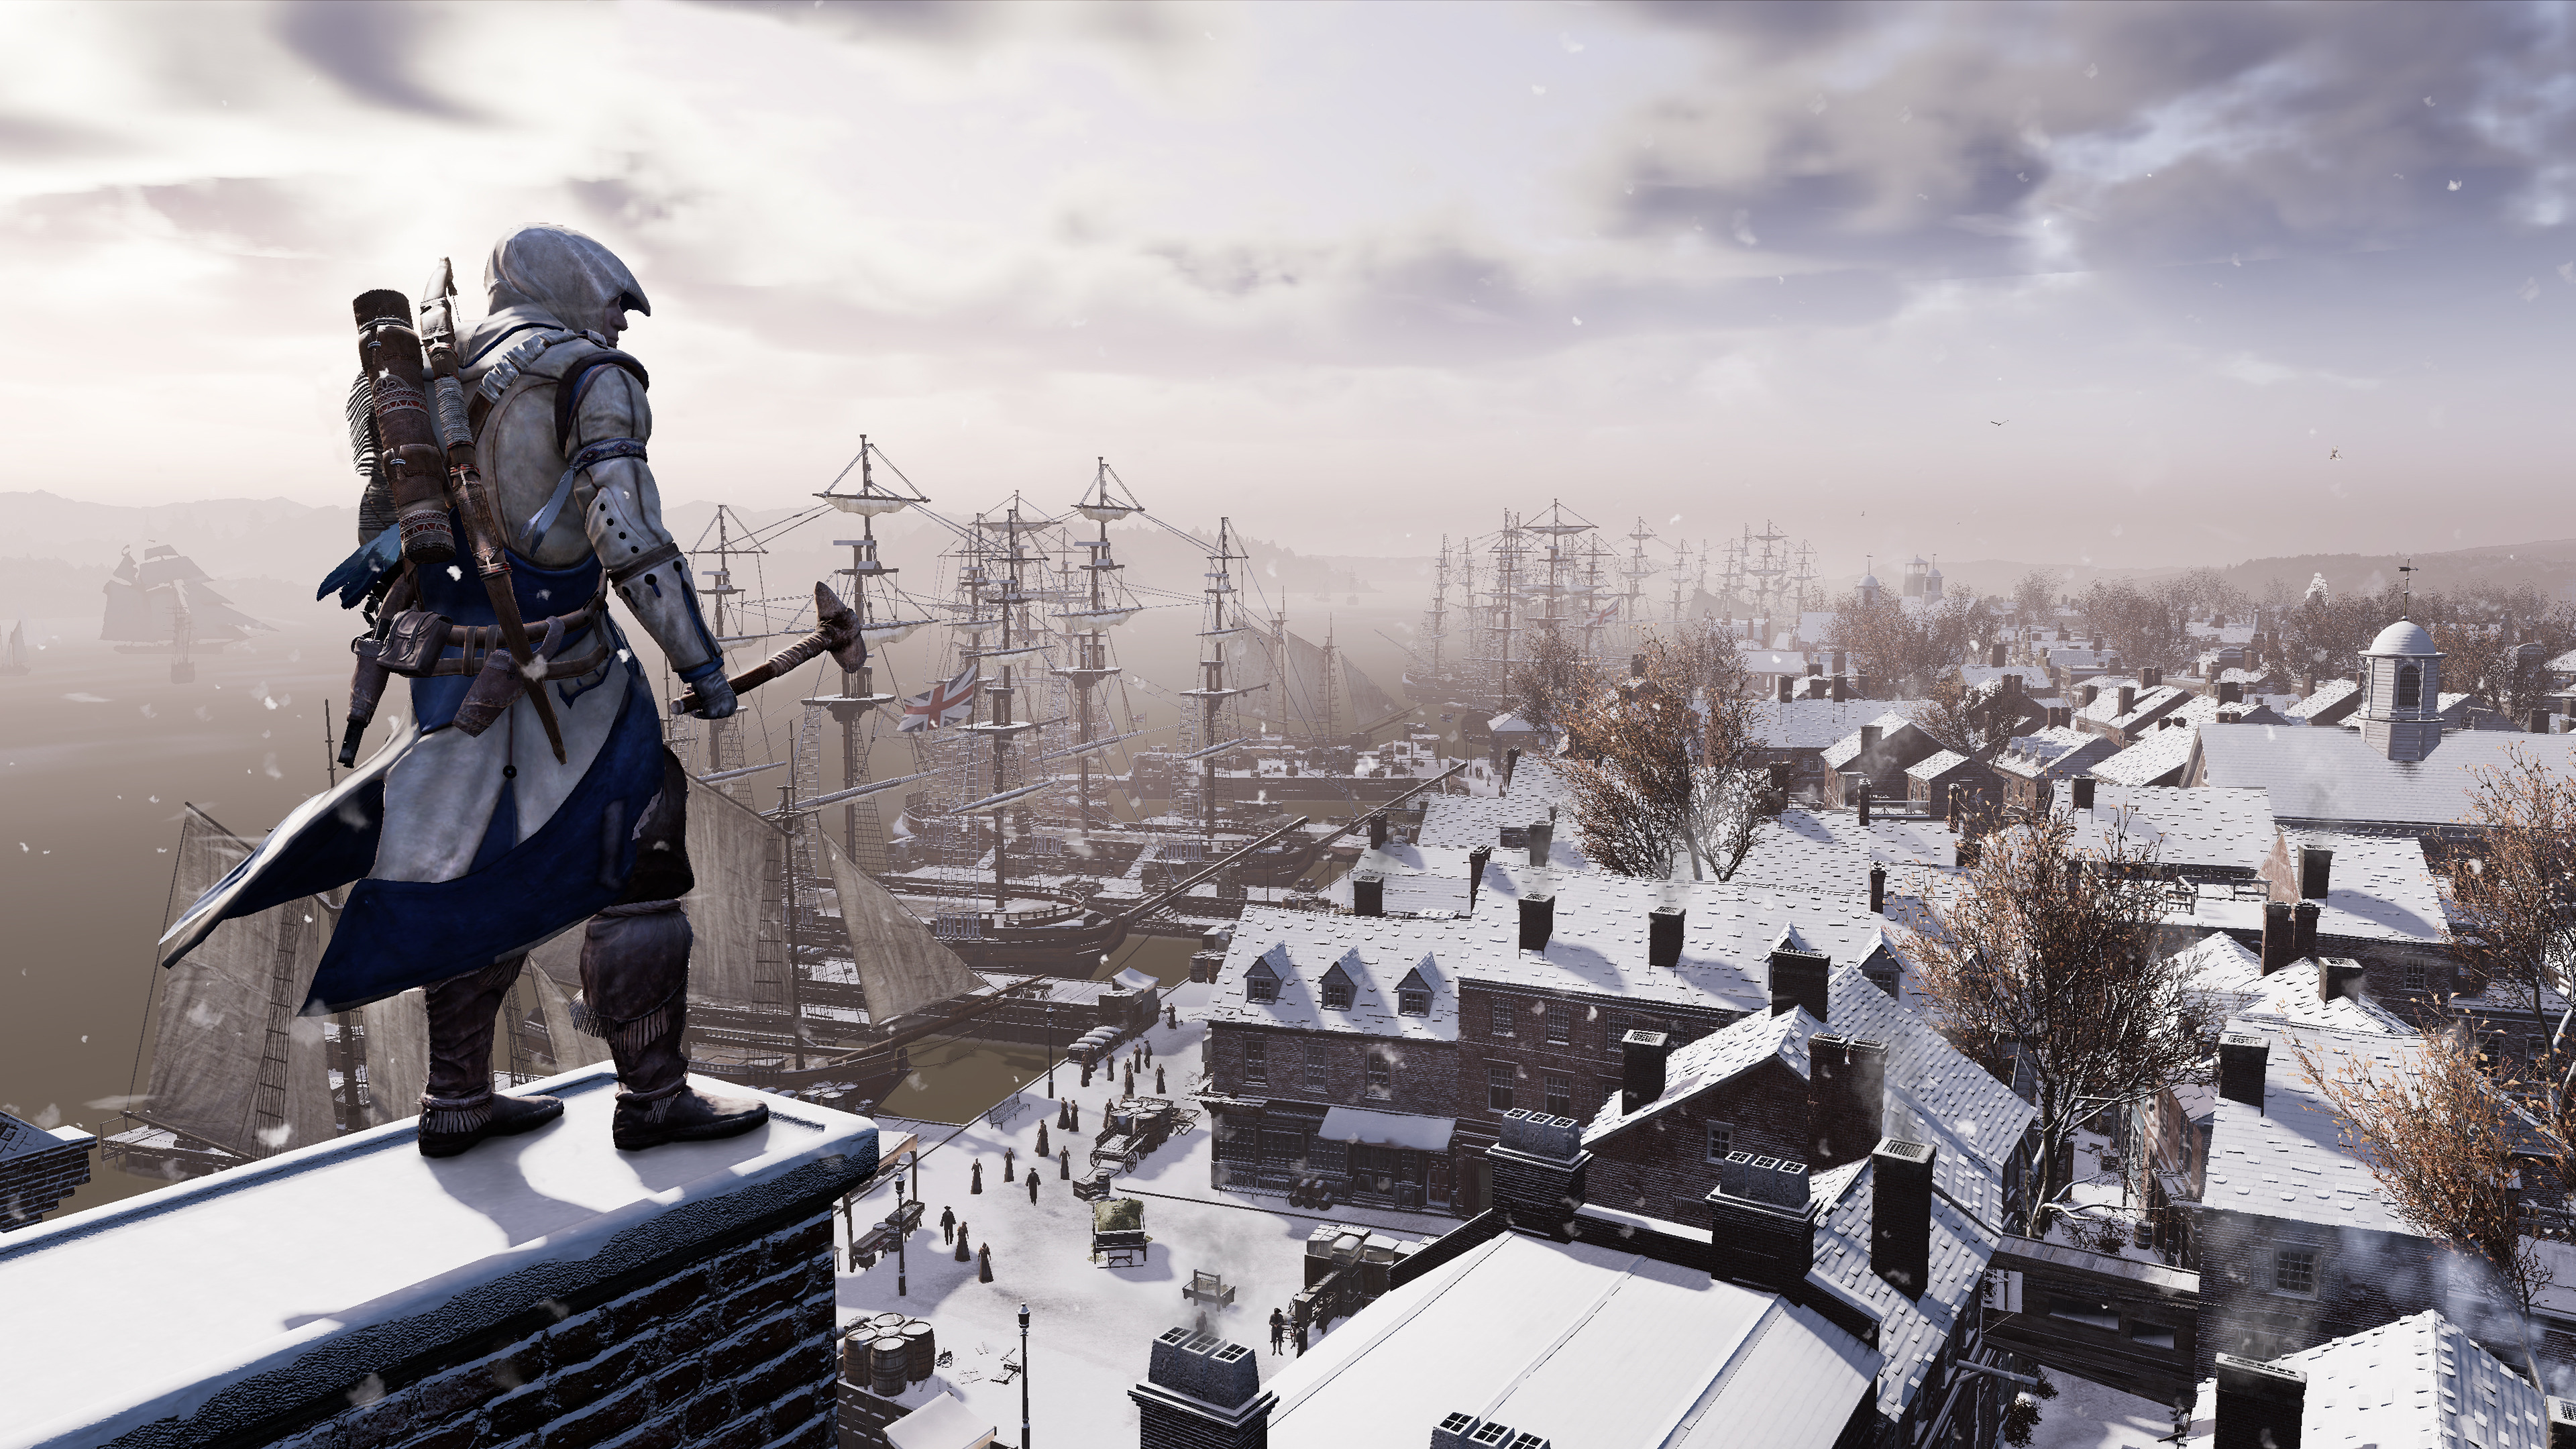 Assassins Creed 3 Remastered 4k Hd Games 4k Wallpapers